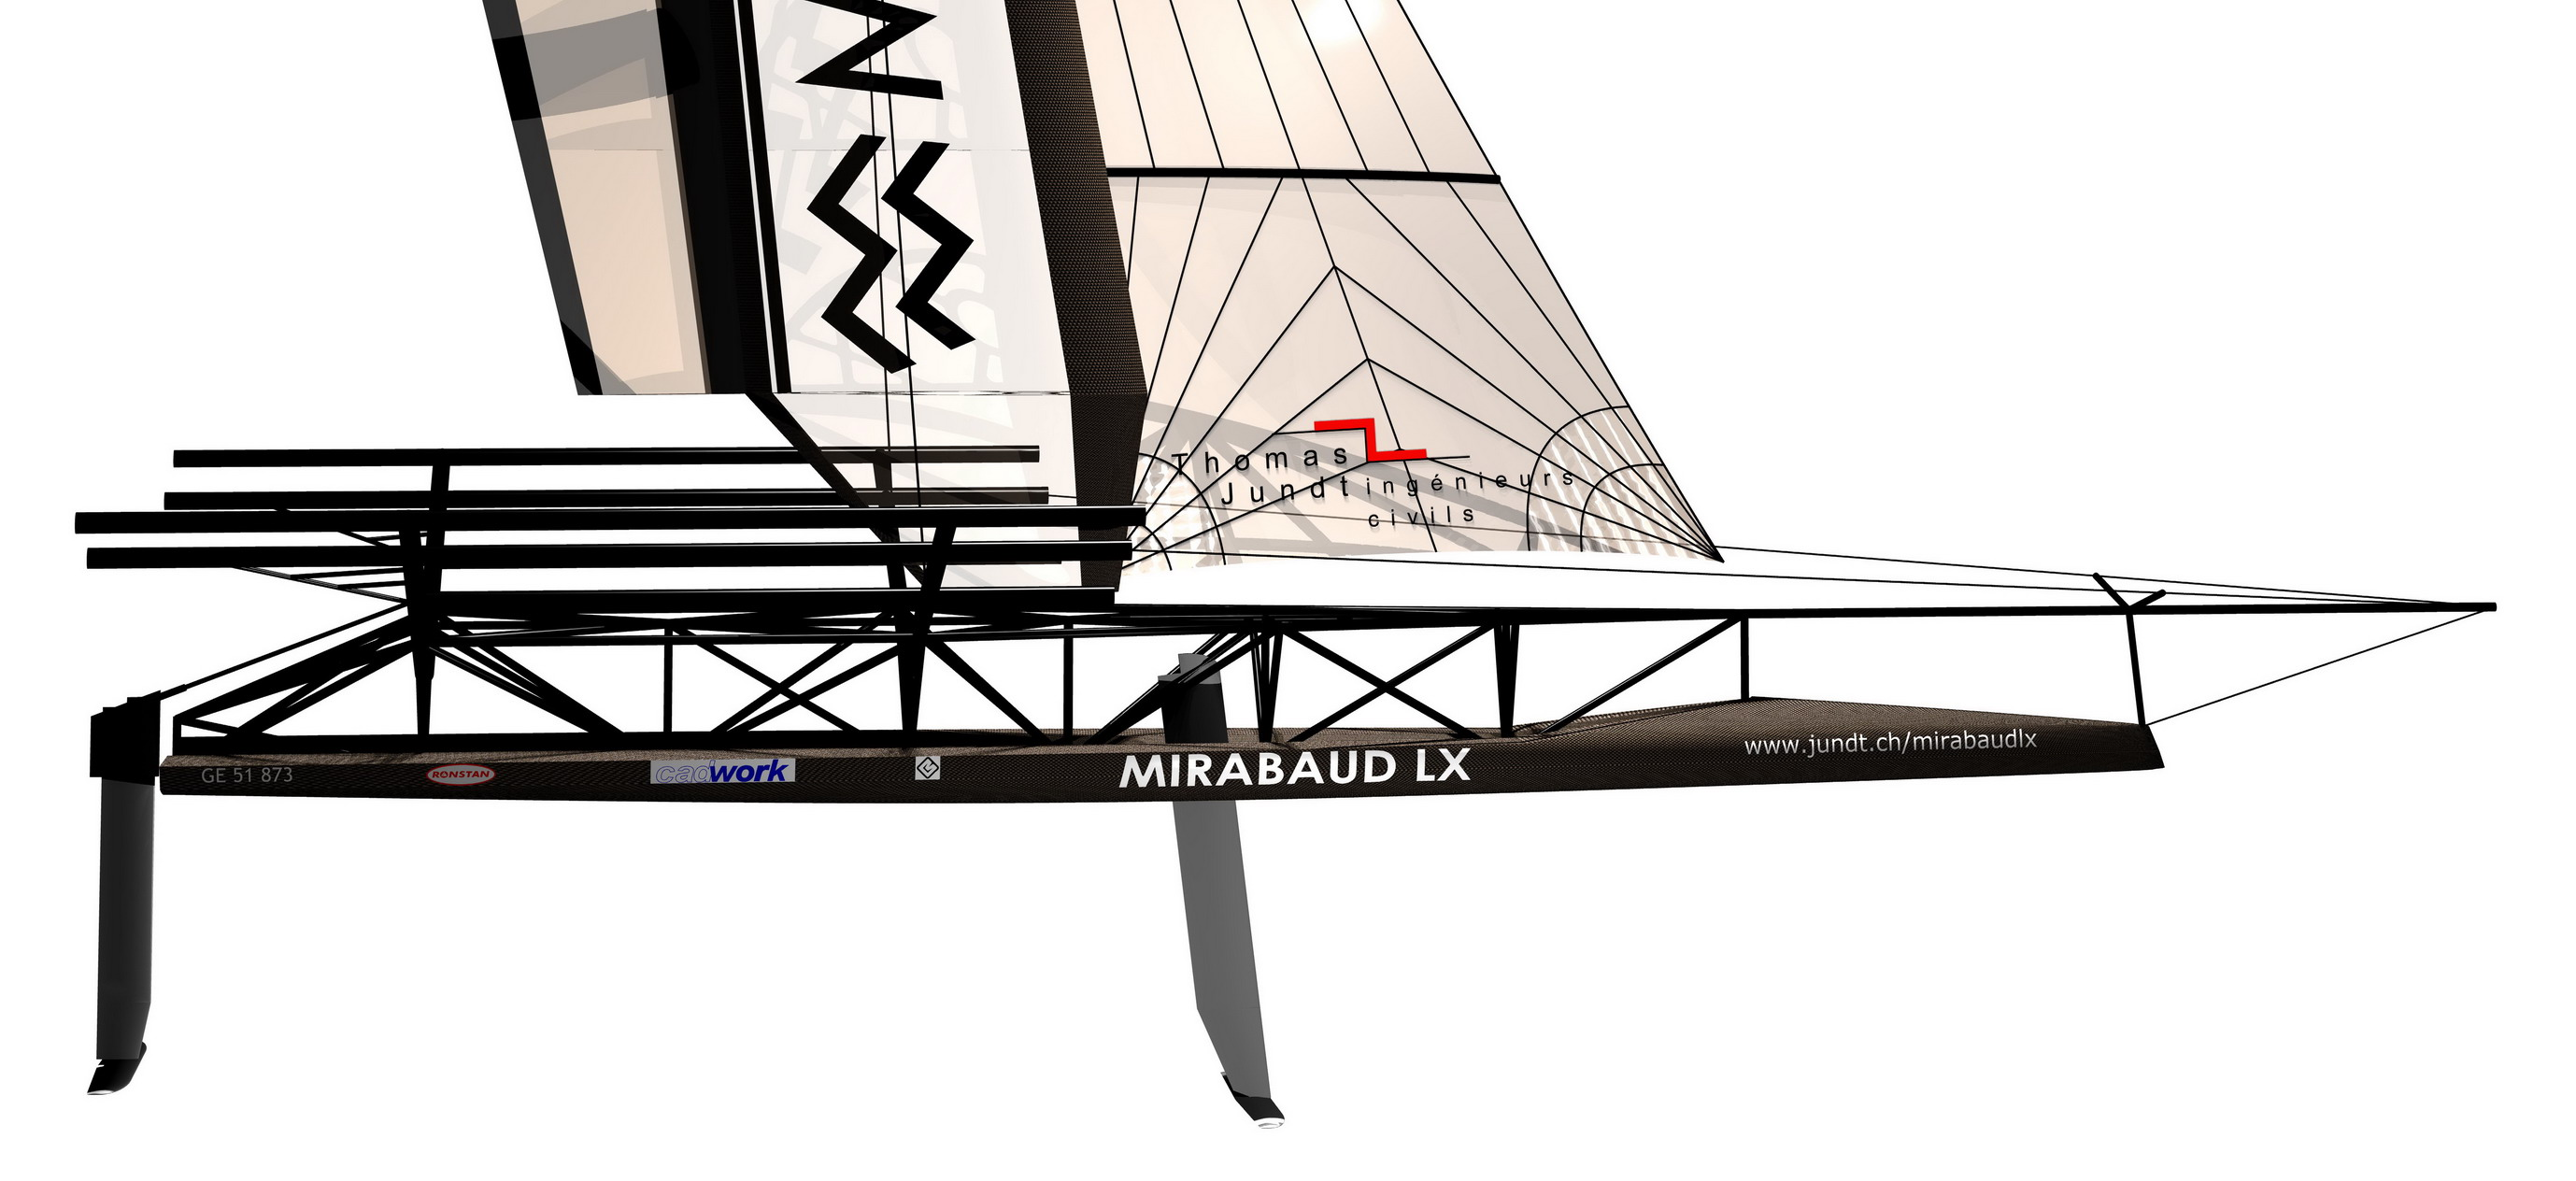 3D Model showing the wingsail on Mirabaud LX